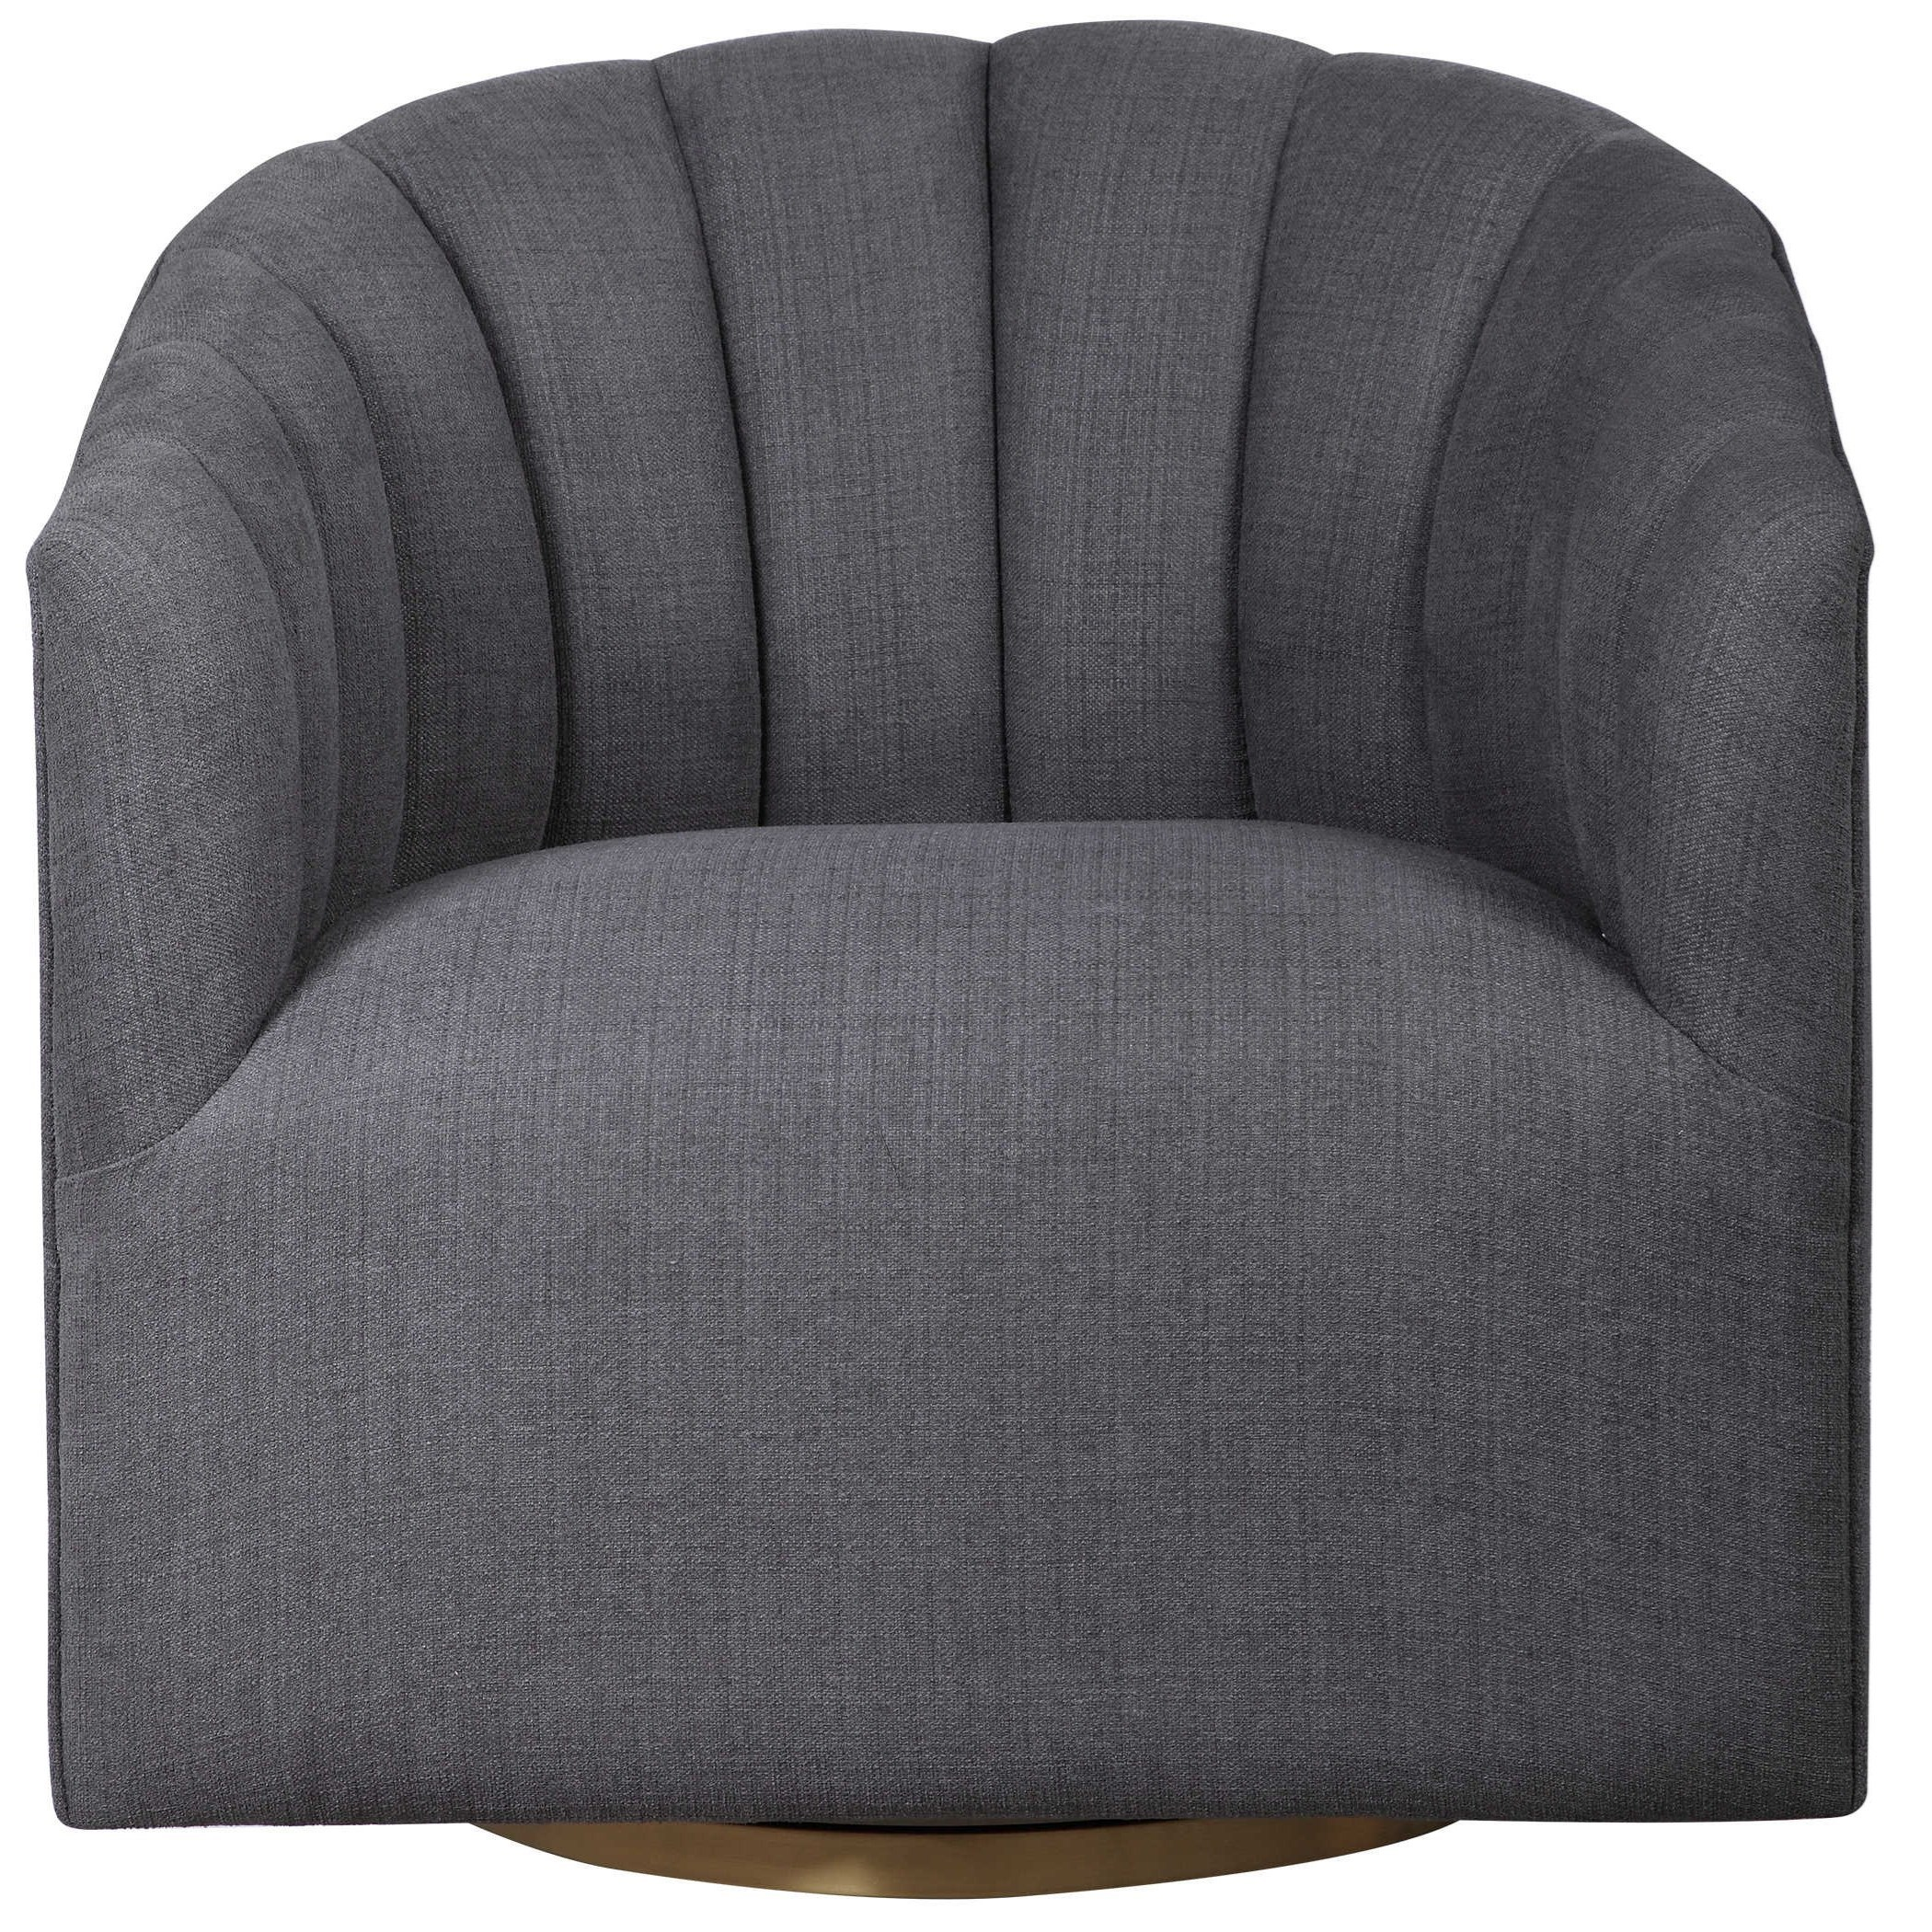 Accent Furniture - Accent Chairs Cuthbert Modern Swivel Chair by Uttermost at Mueller Furniture